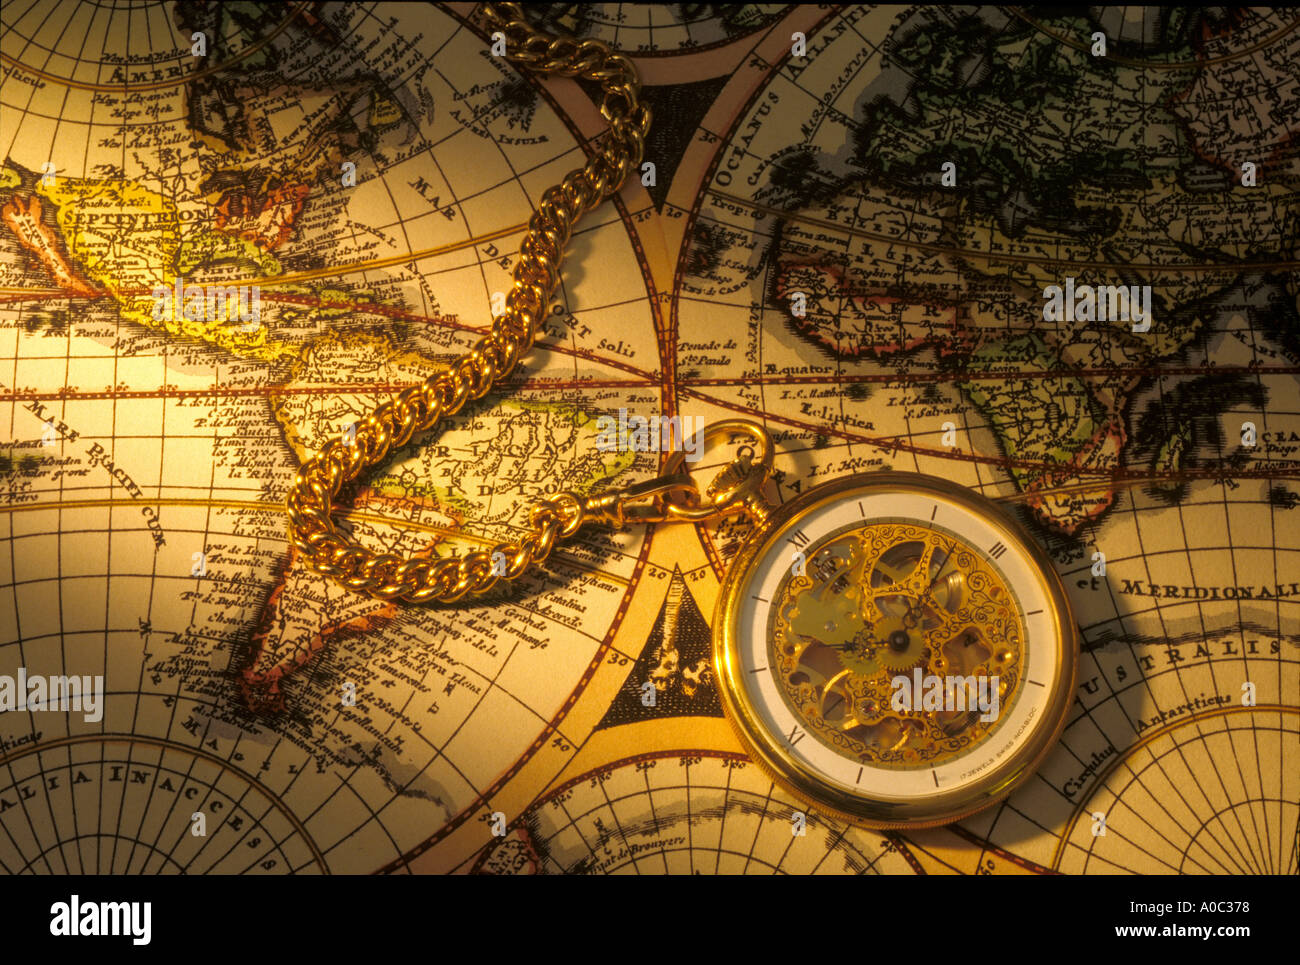 Pocket Watch On Old World Map Stock Photo Royalty Free Image - Old world map